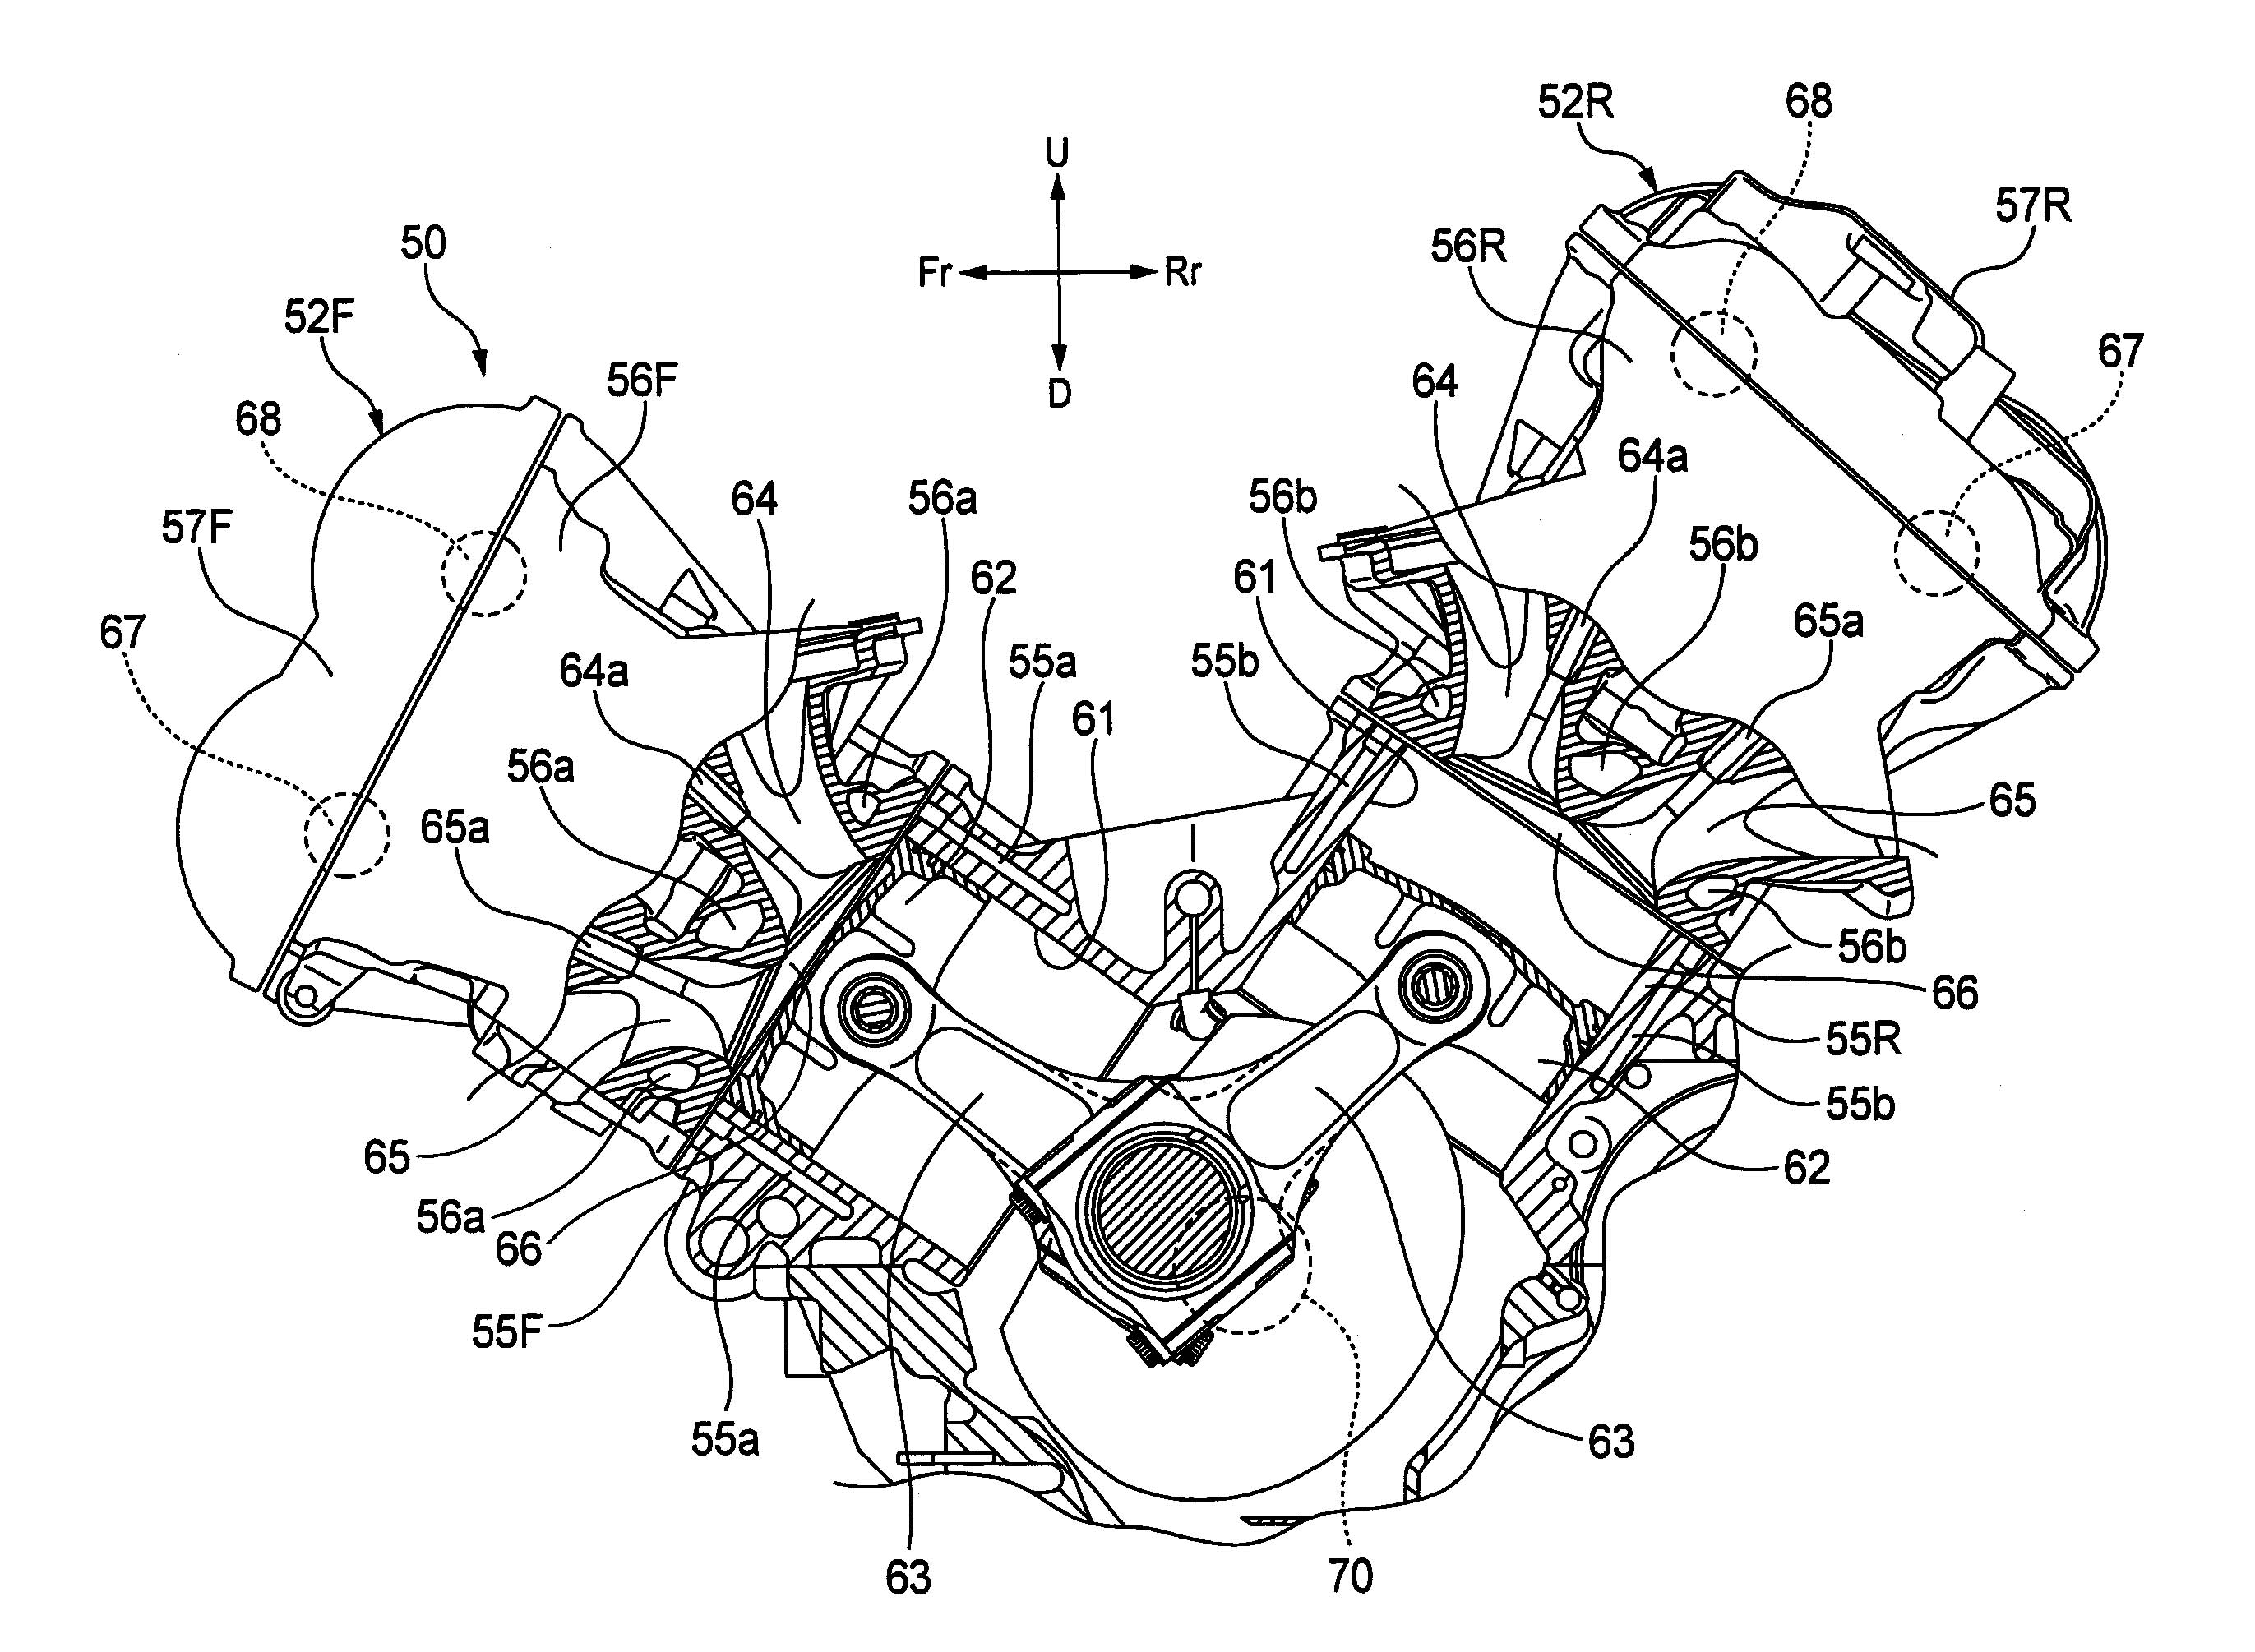 sea drive omc v4 engine diagram v4 engine diagram honda v4 superbike engine outed in patent photos - asphalt ... #2